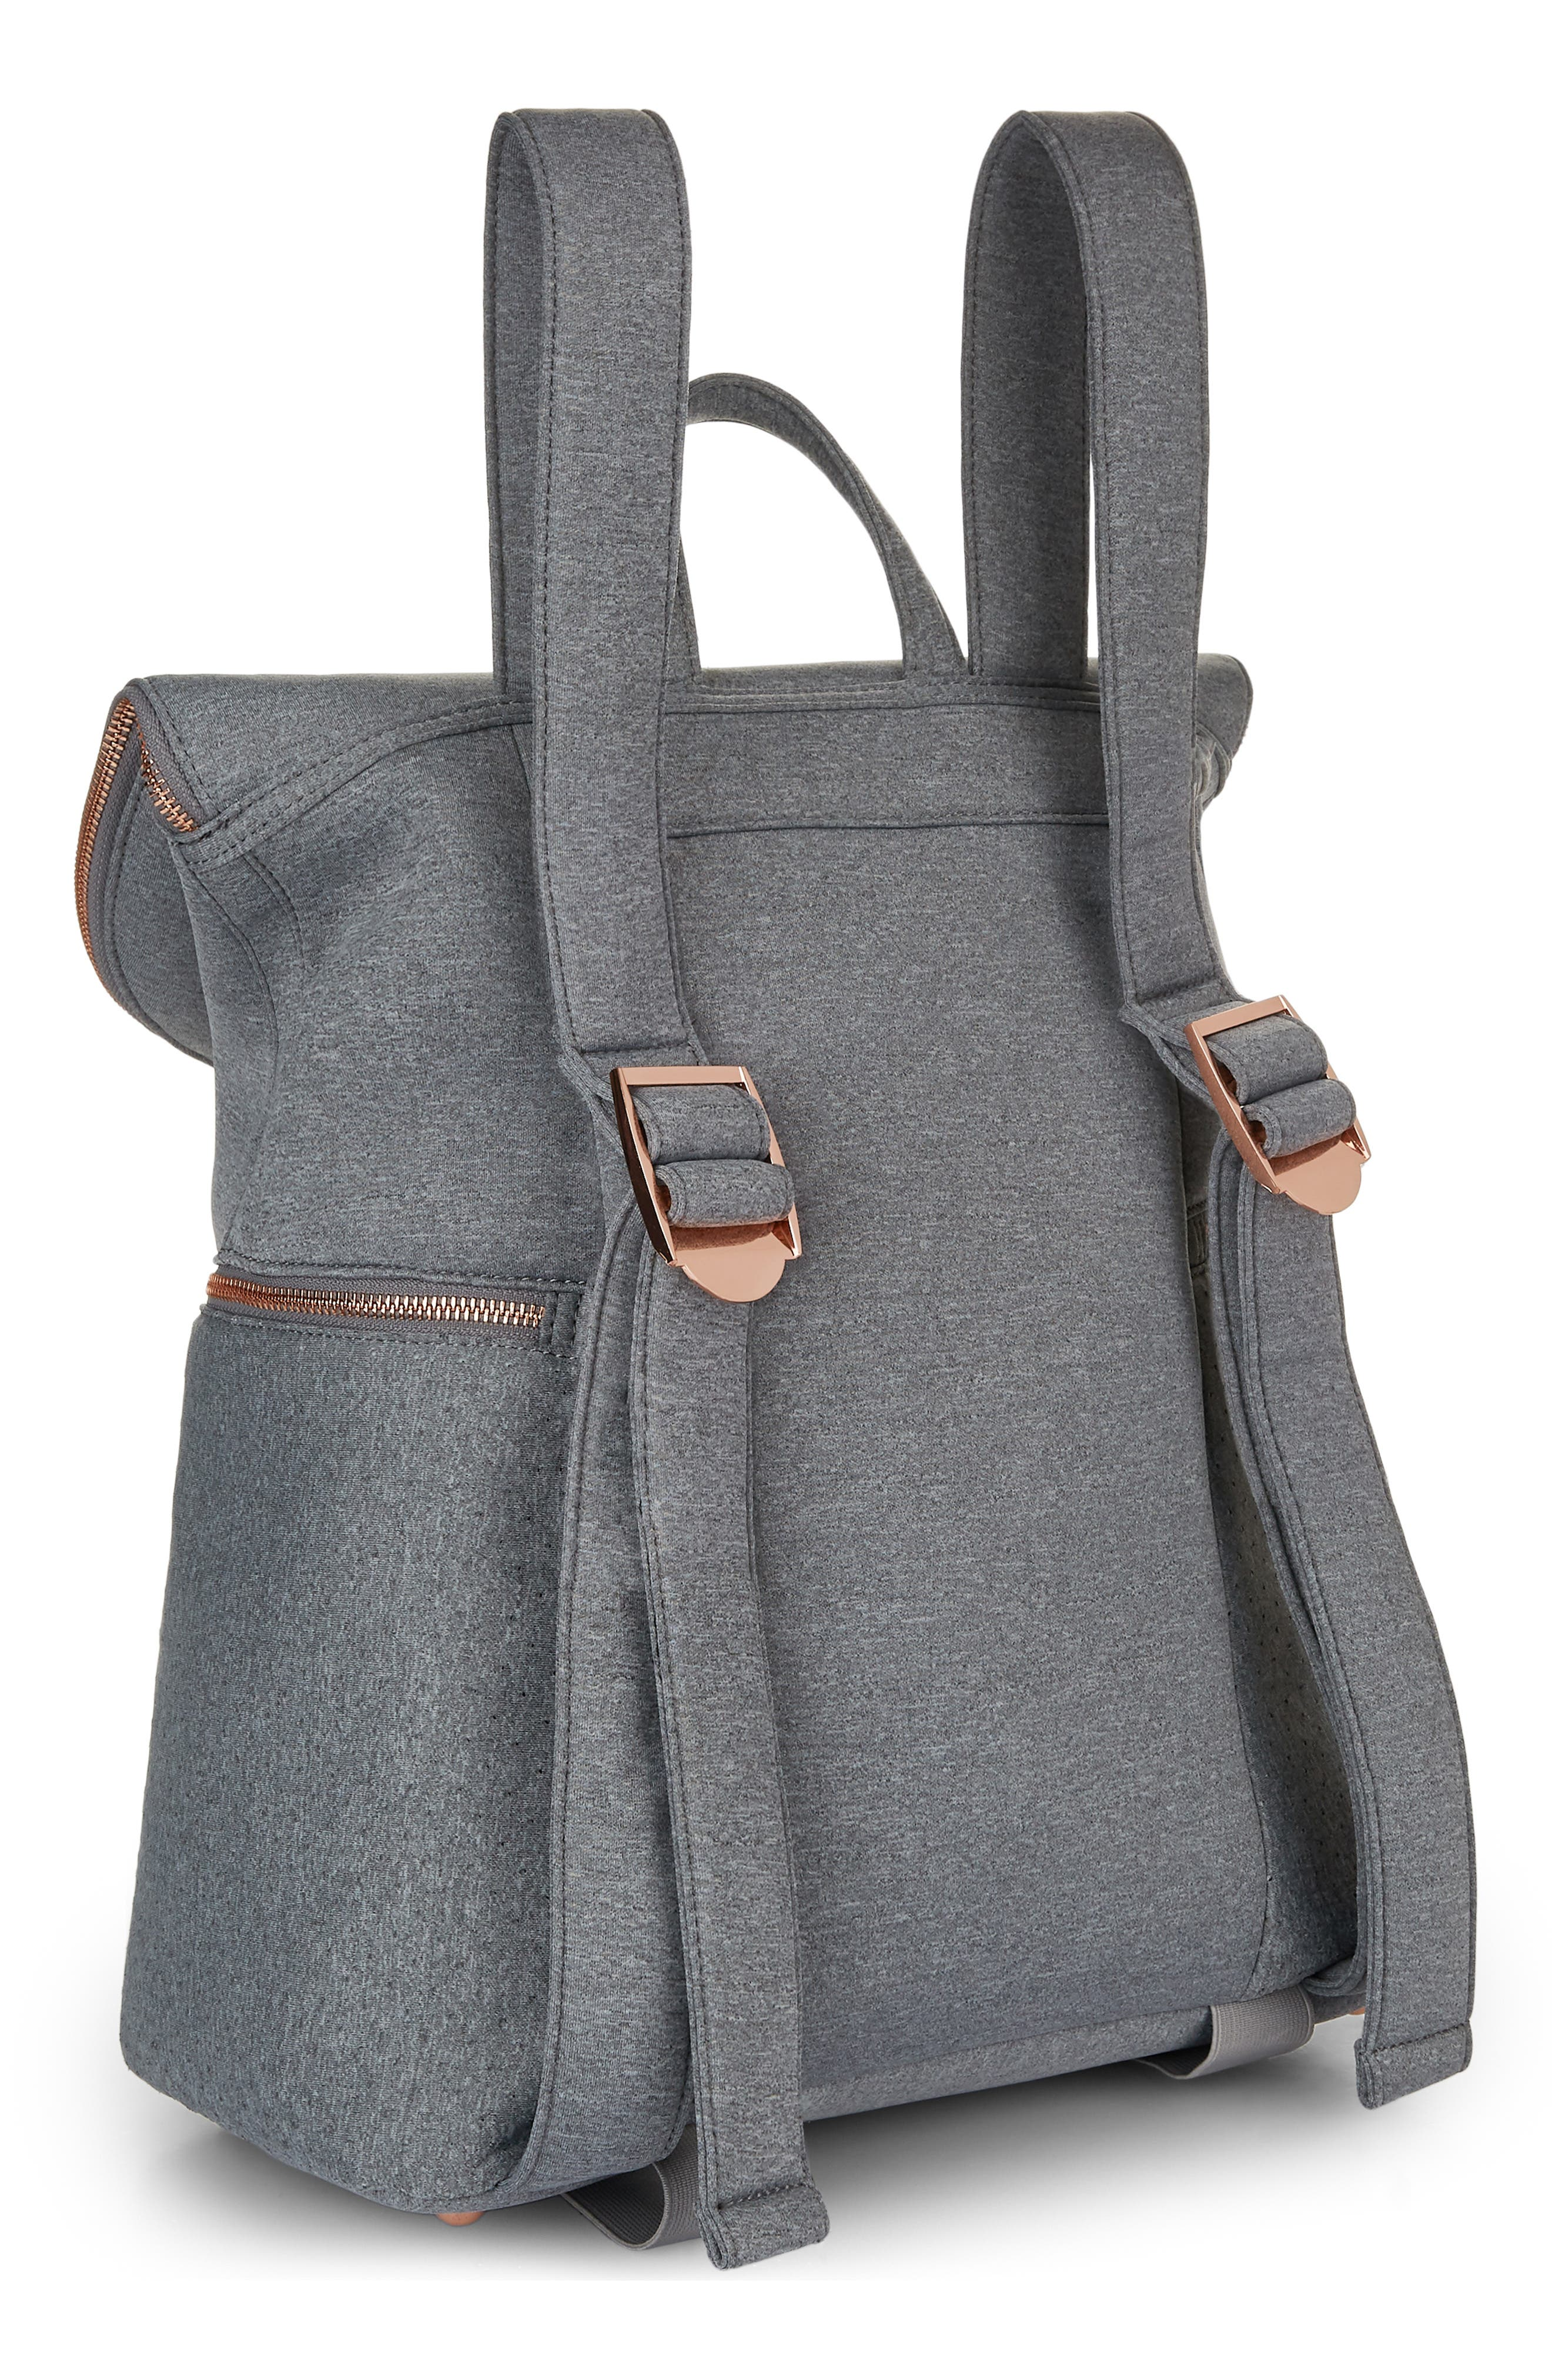 All Sport Backpack,                             Alternate thumbnail 3, color,                             CHARCOAL MARL